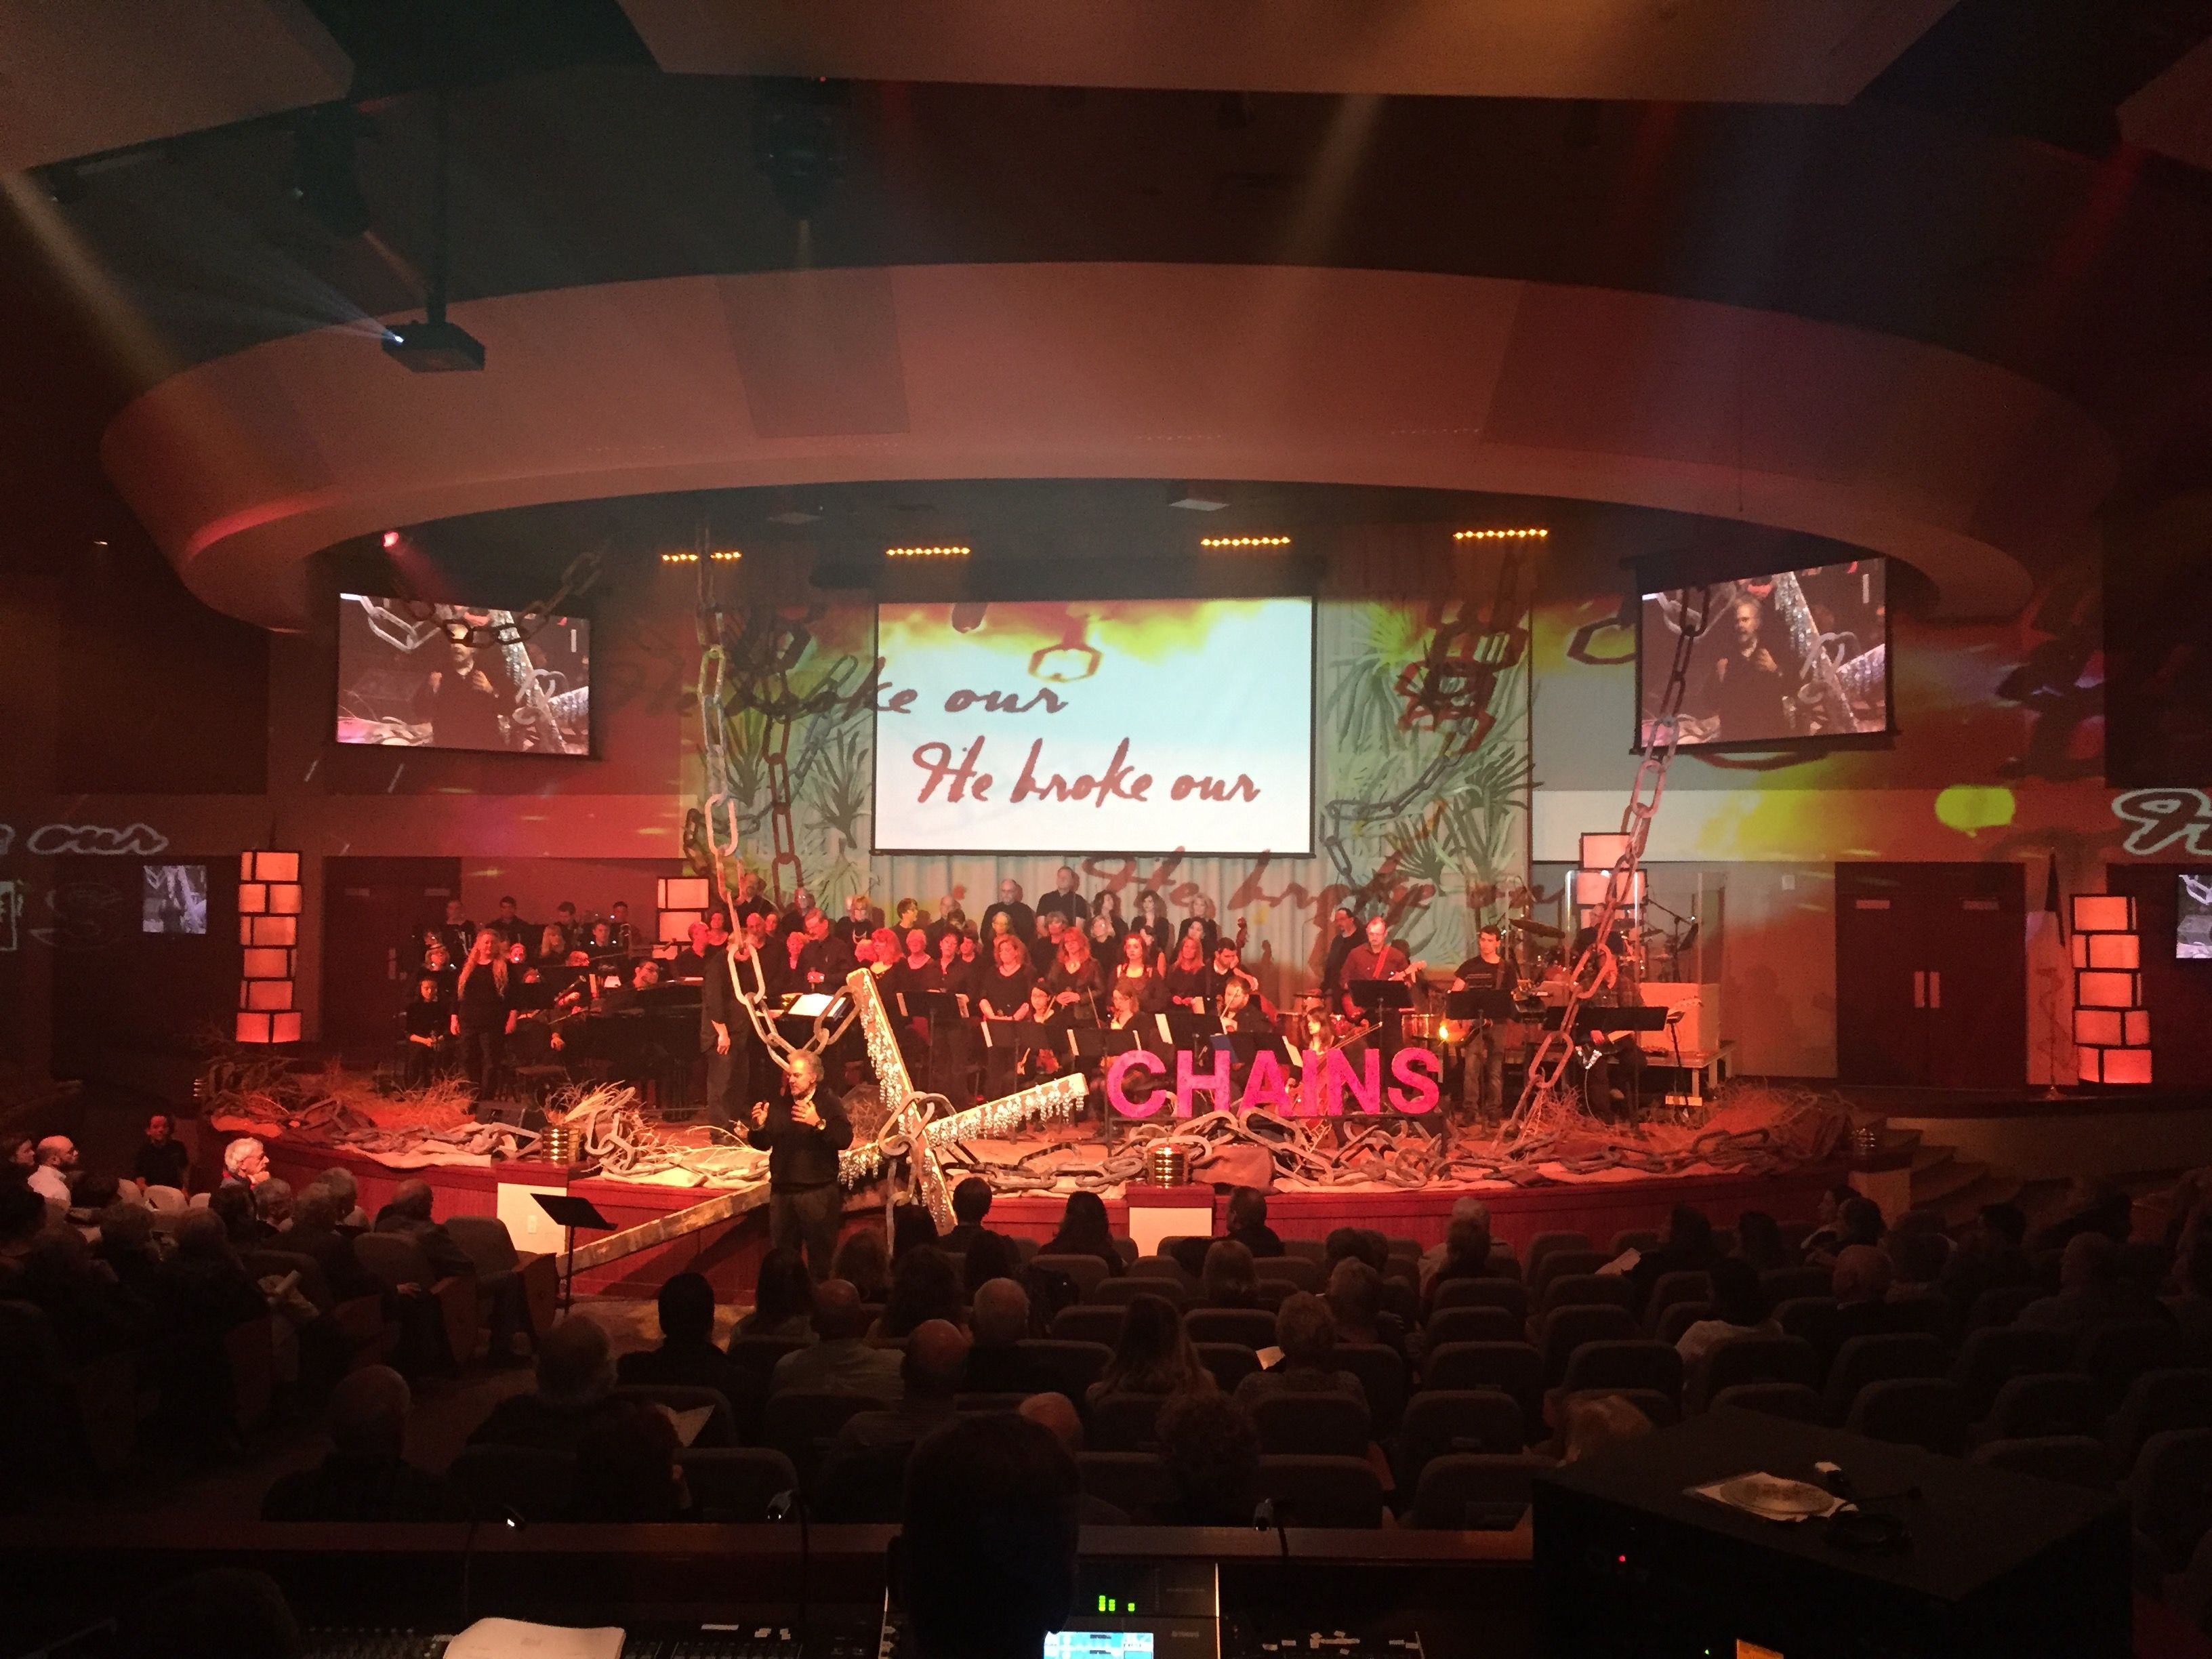 easter projected from greeley wesleyan church in greeley co brings us this easter stage design - Church Stage Design Ideas